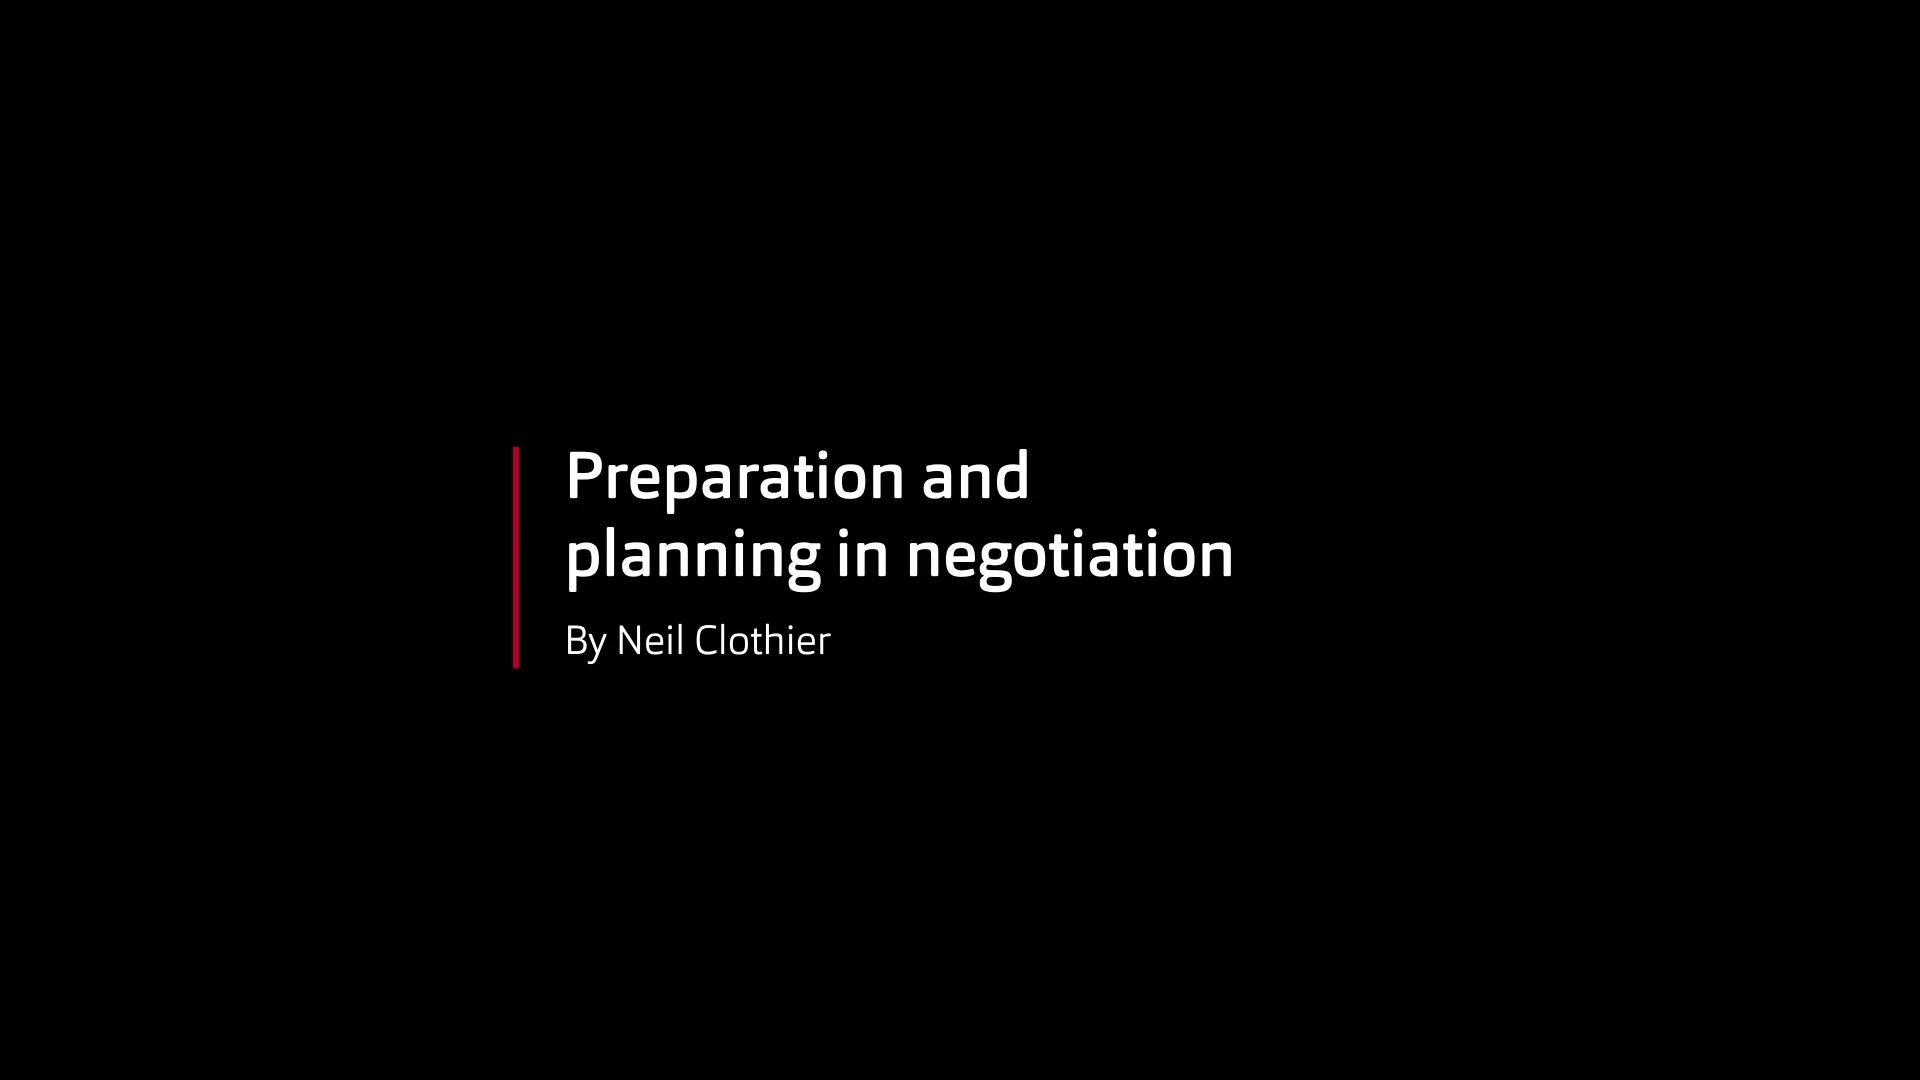 Preparation and planning - Neil Clothier